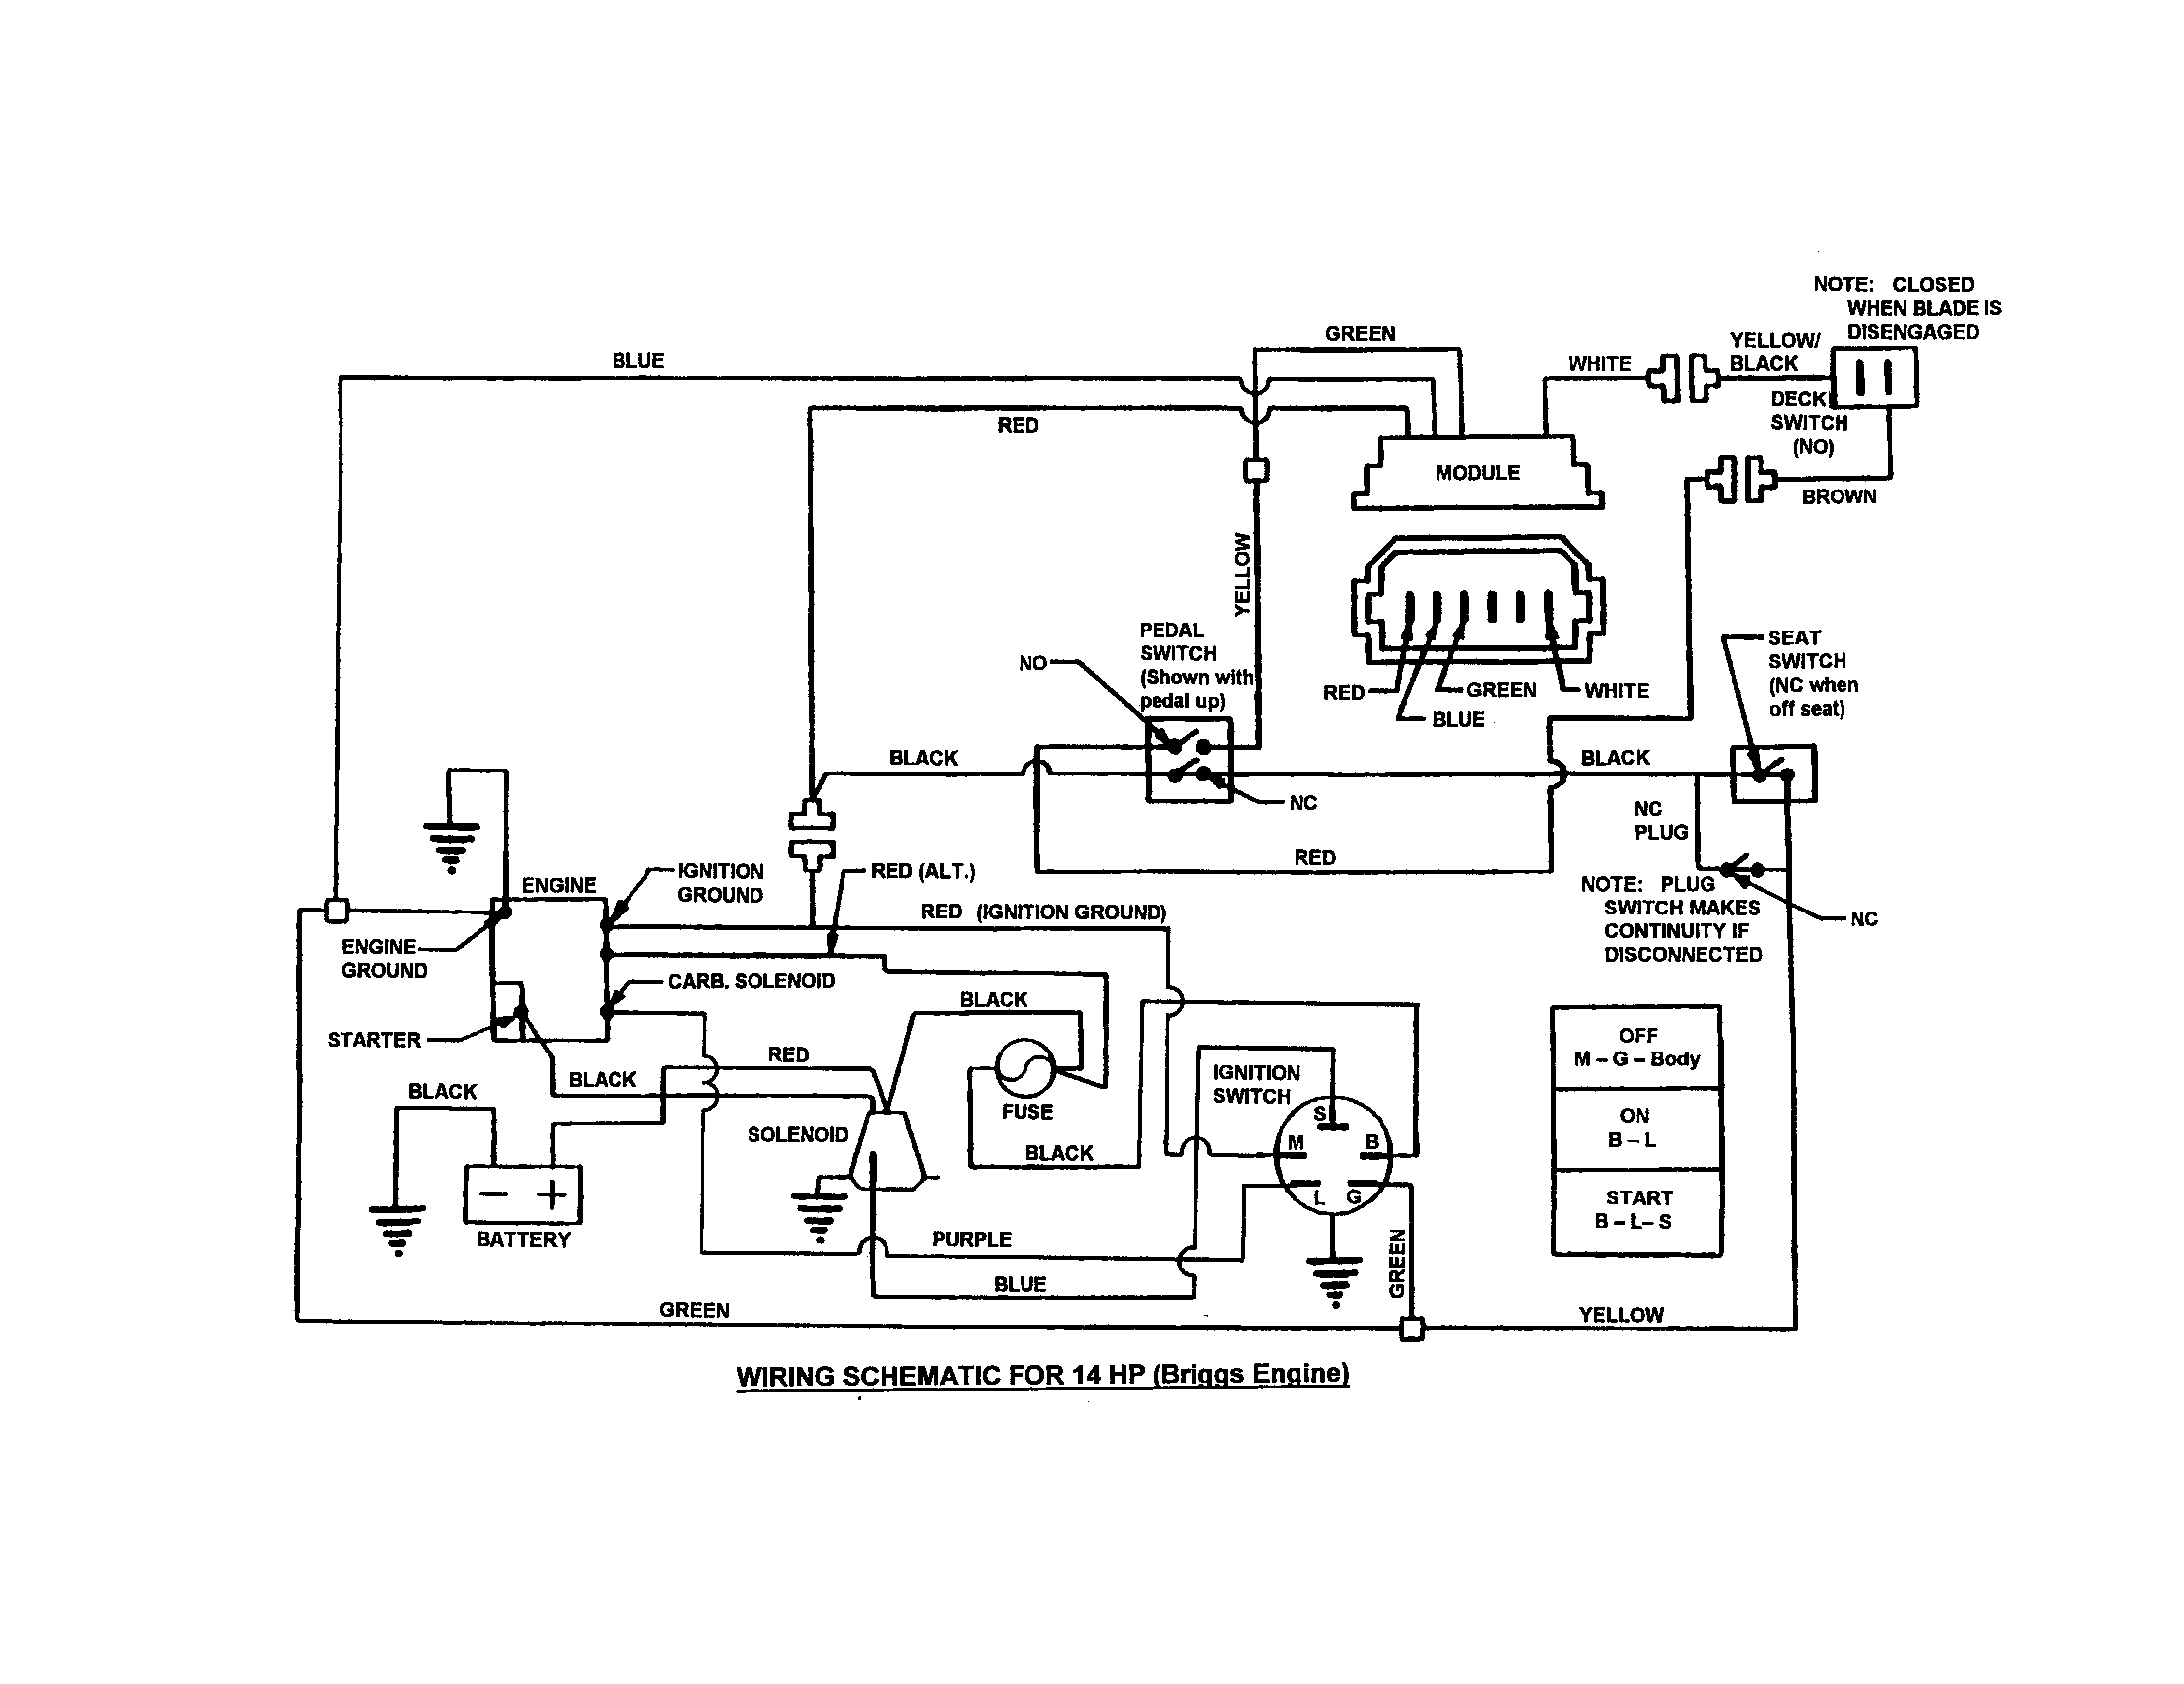 WIRING SCHEMATIC-14 HP Diagram & Parts List For Model